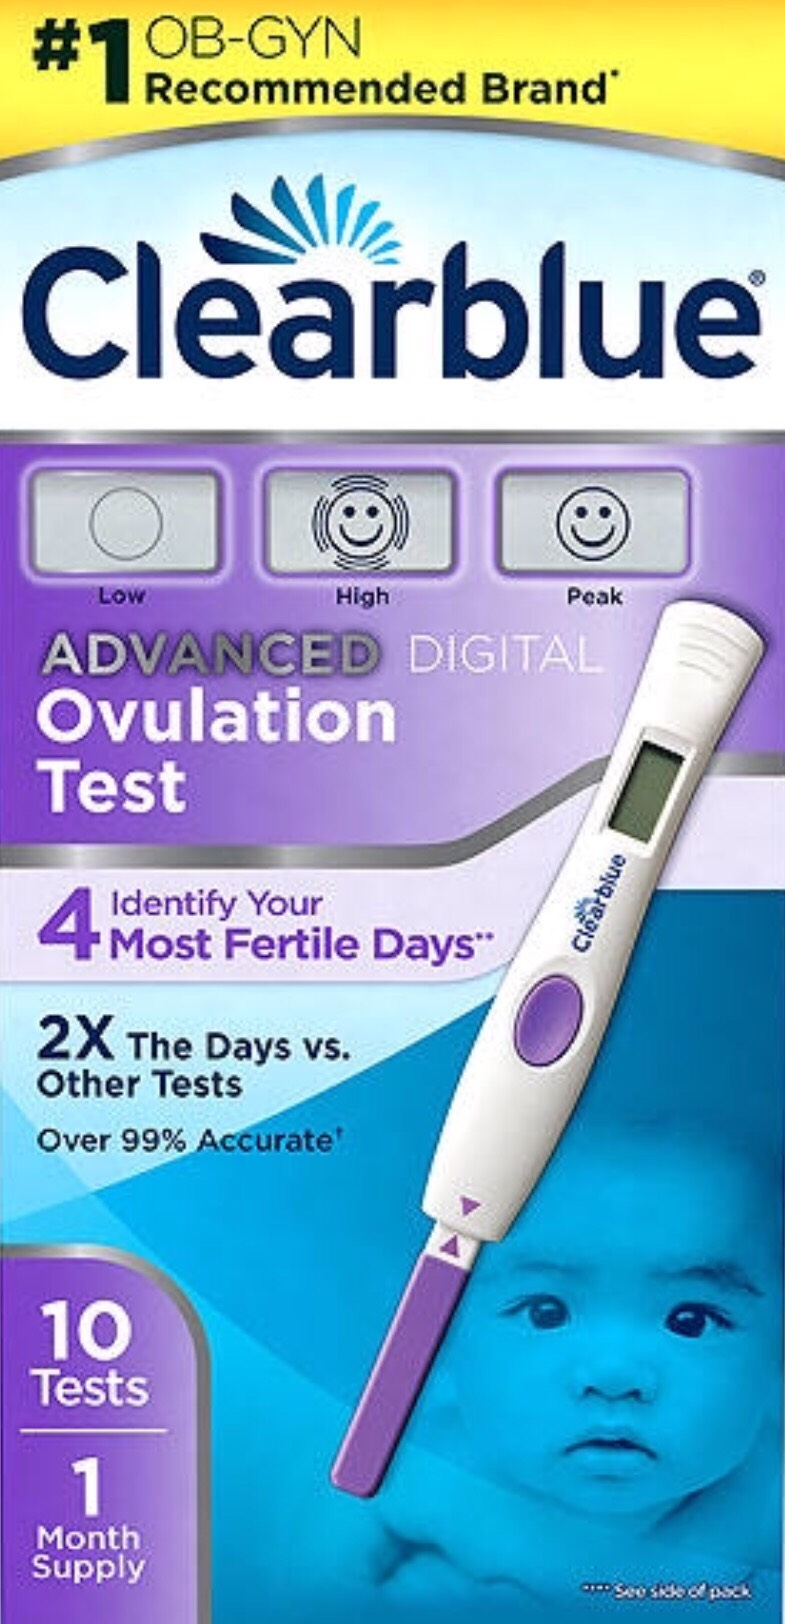 When trying to get pregnant, use an ovulation test.